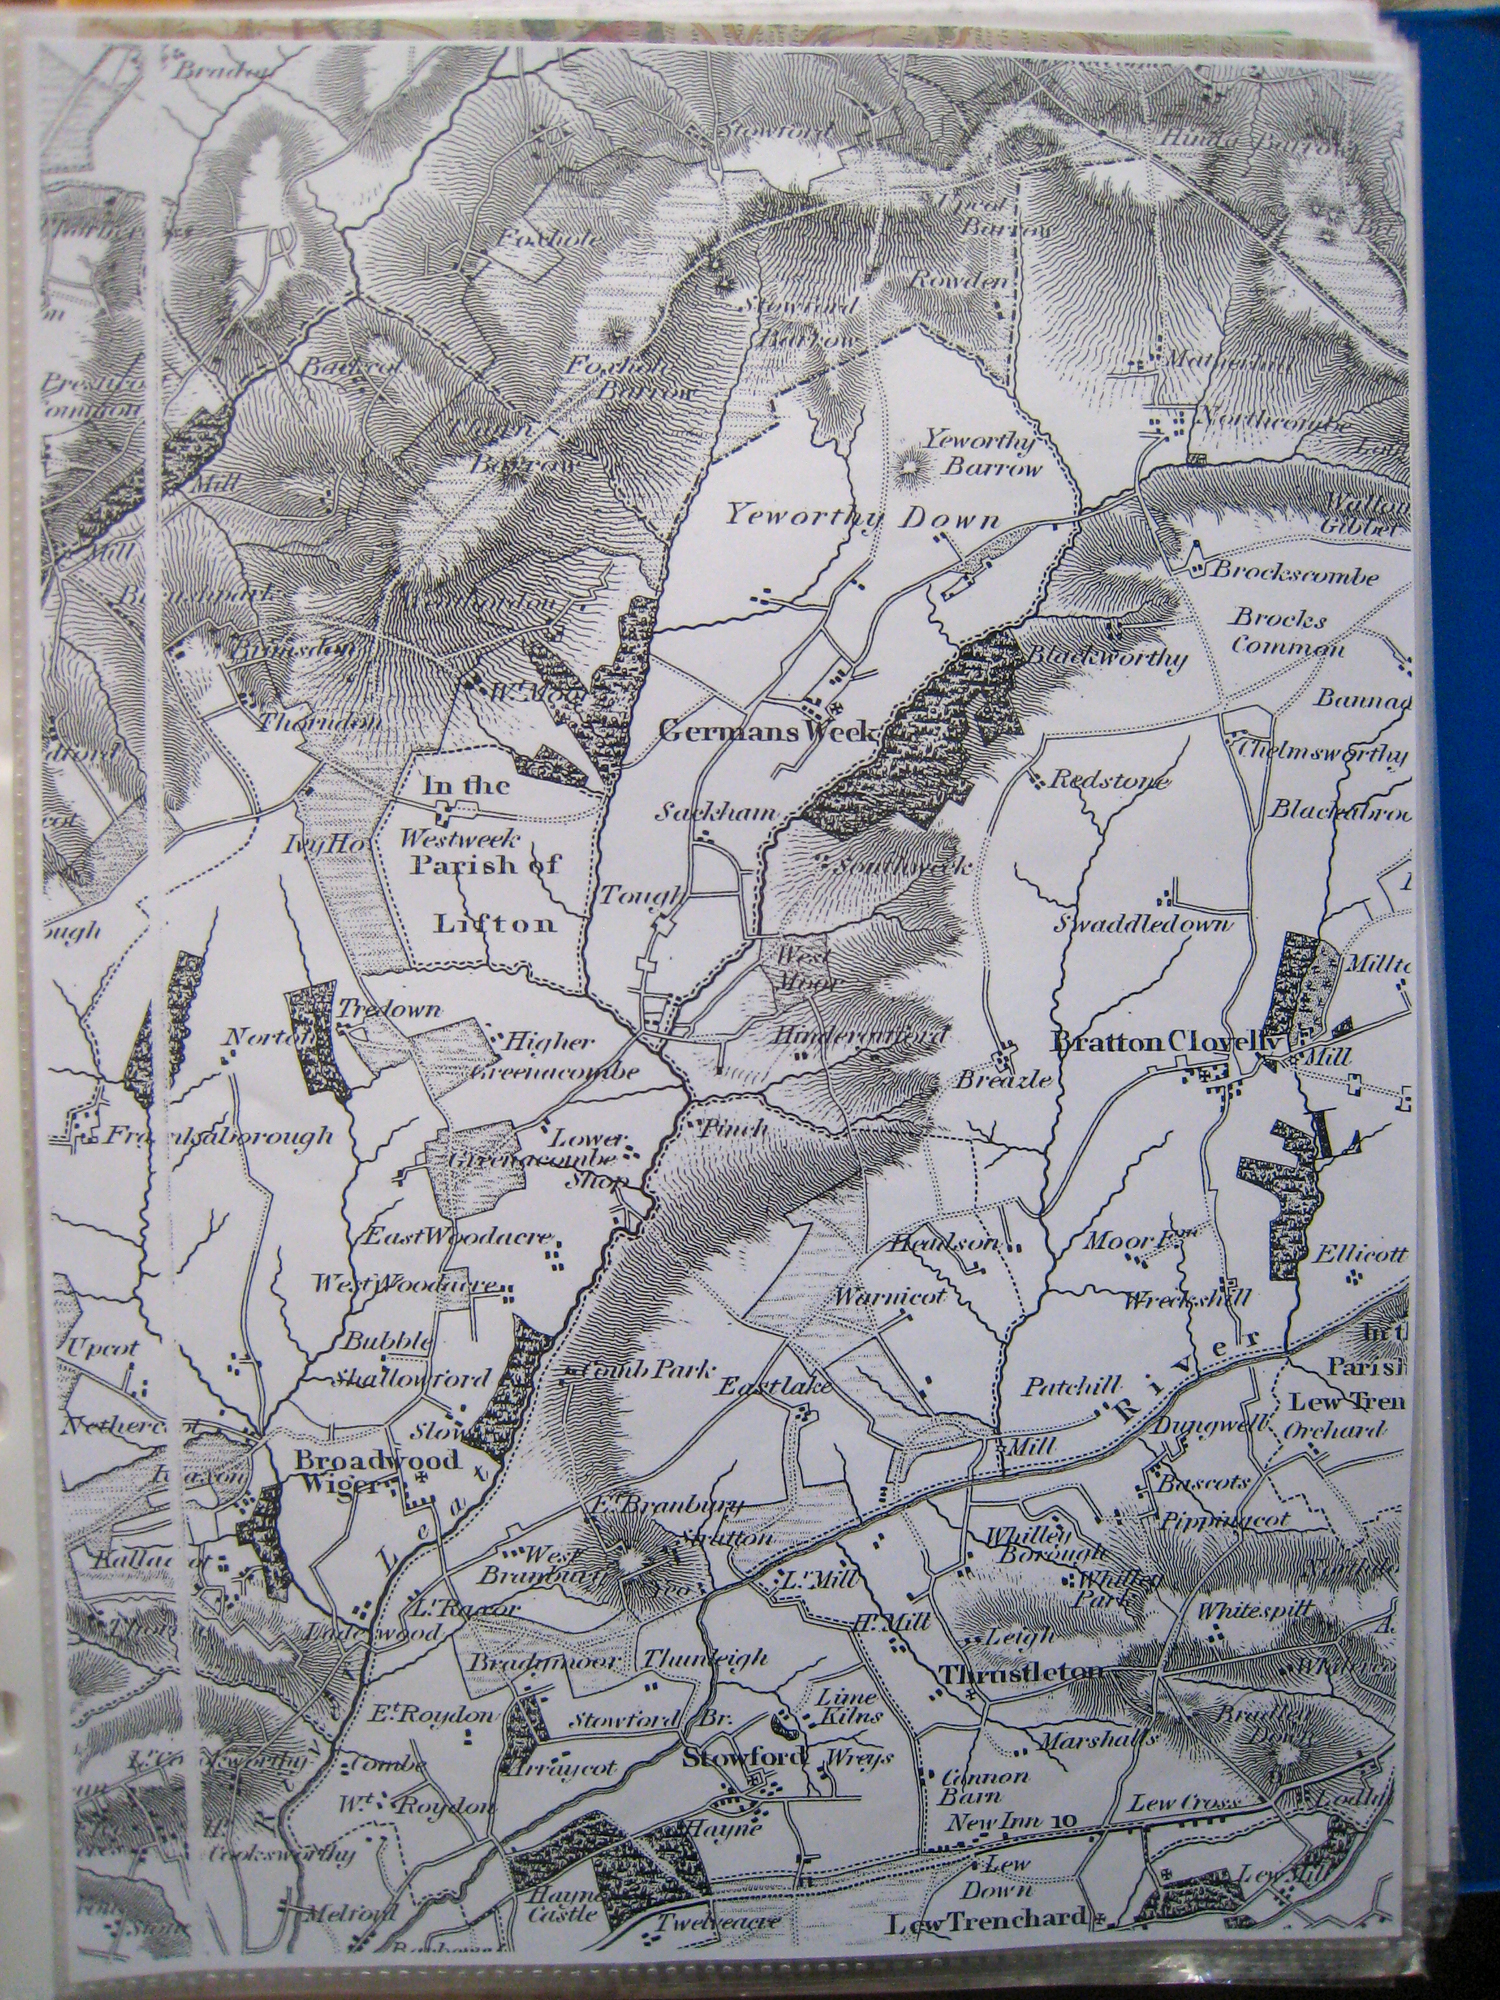 Historical map of the Roadford and Germansweek area